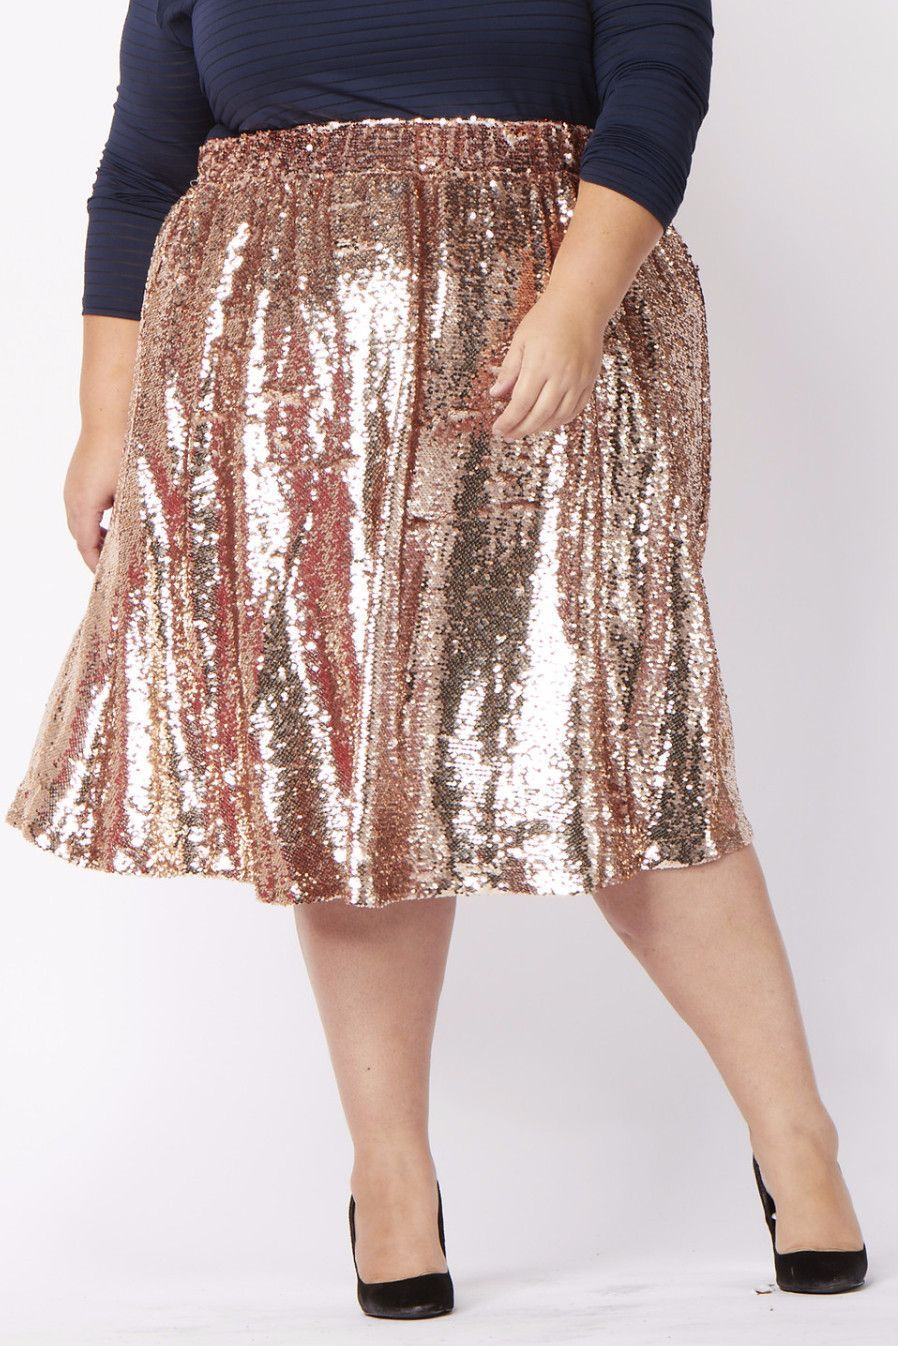 0c78a399dc3 Plus Size Clothing for Women - Mermaiden Sequin Skirt - Rose Gold -  Society+ - Society Plus - Buy Online Now! - 1